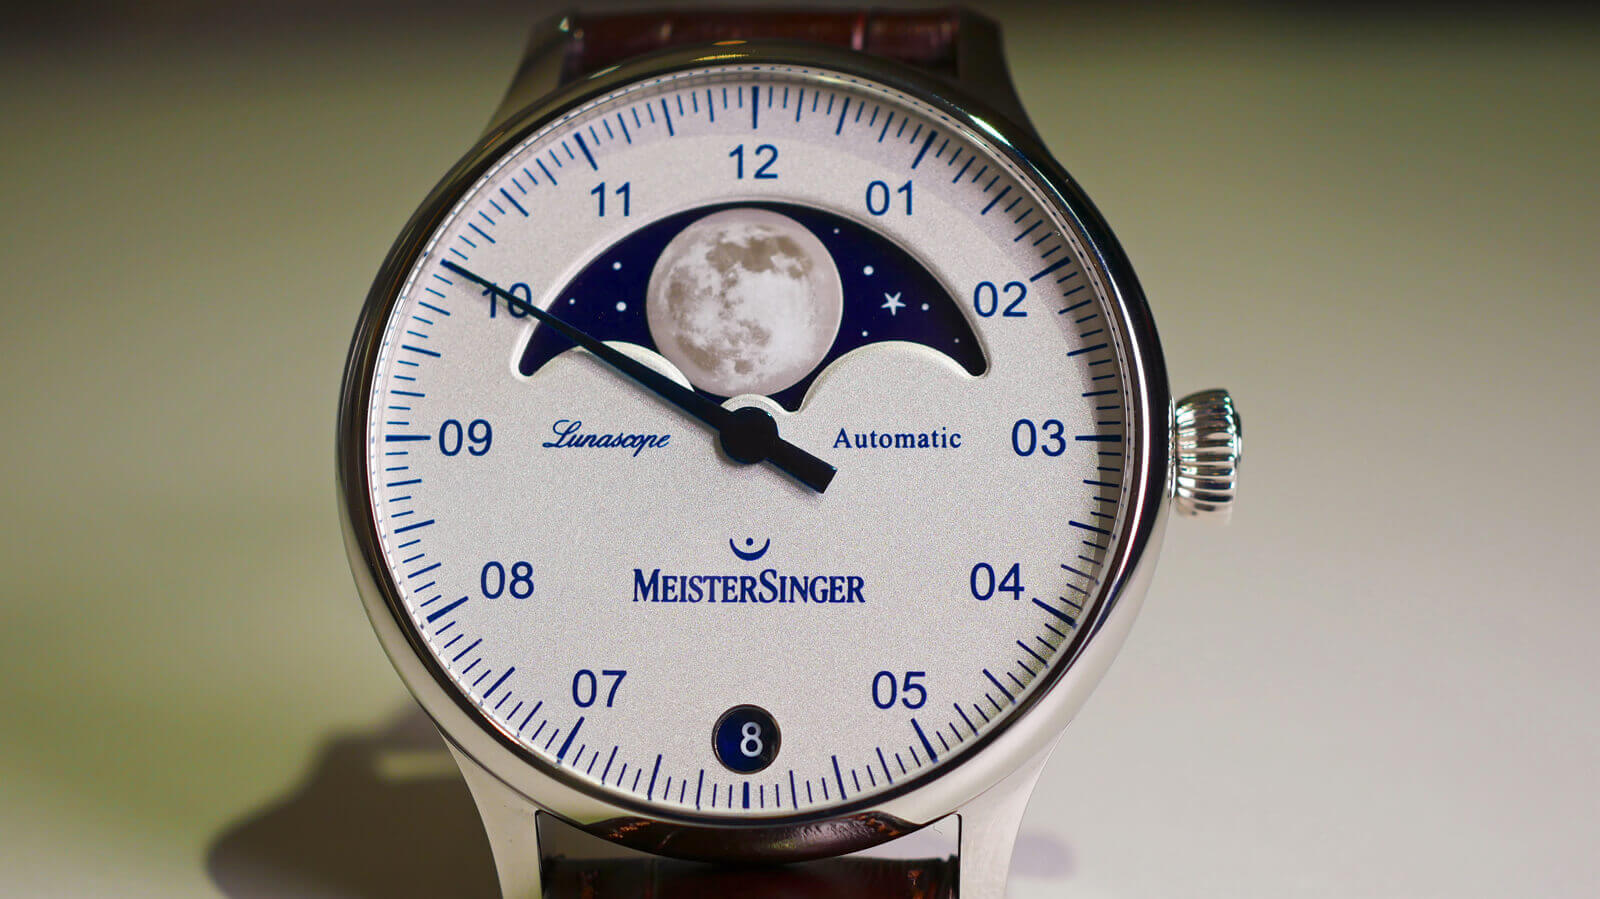 MeisterSinger Lunascope - single-hand watch with large moon-phase display